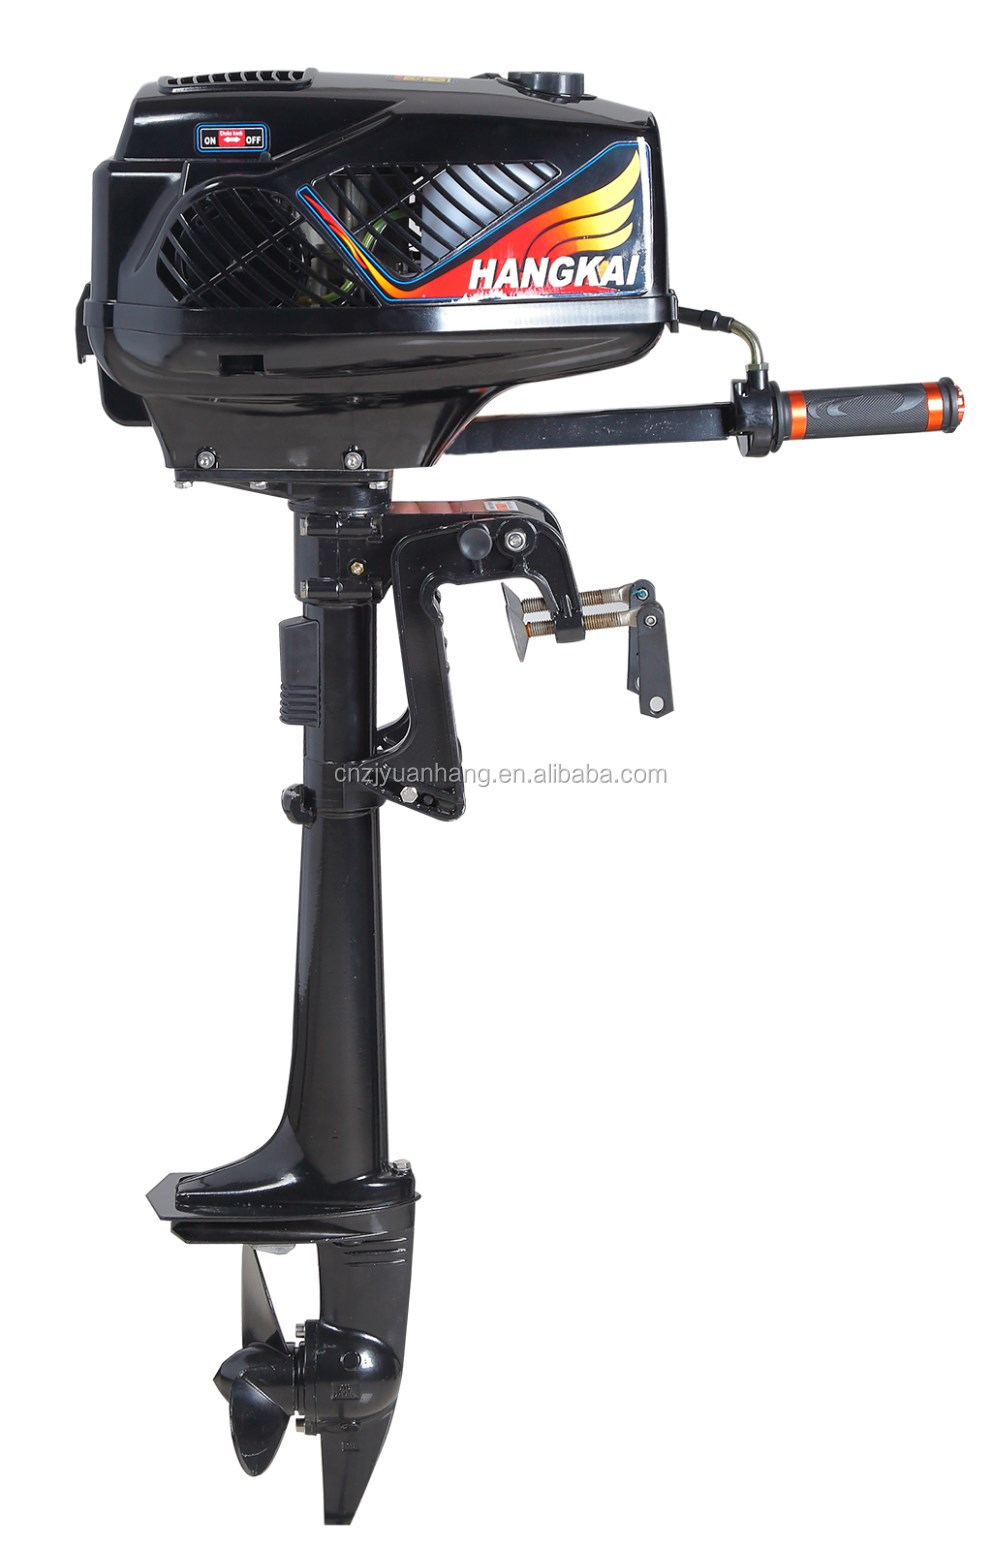 Small Outboard Motors : Stroke small outboard motor hp view